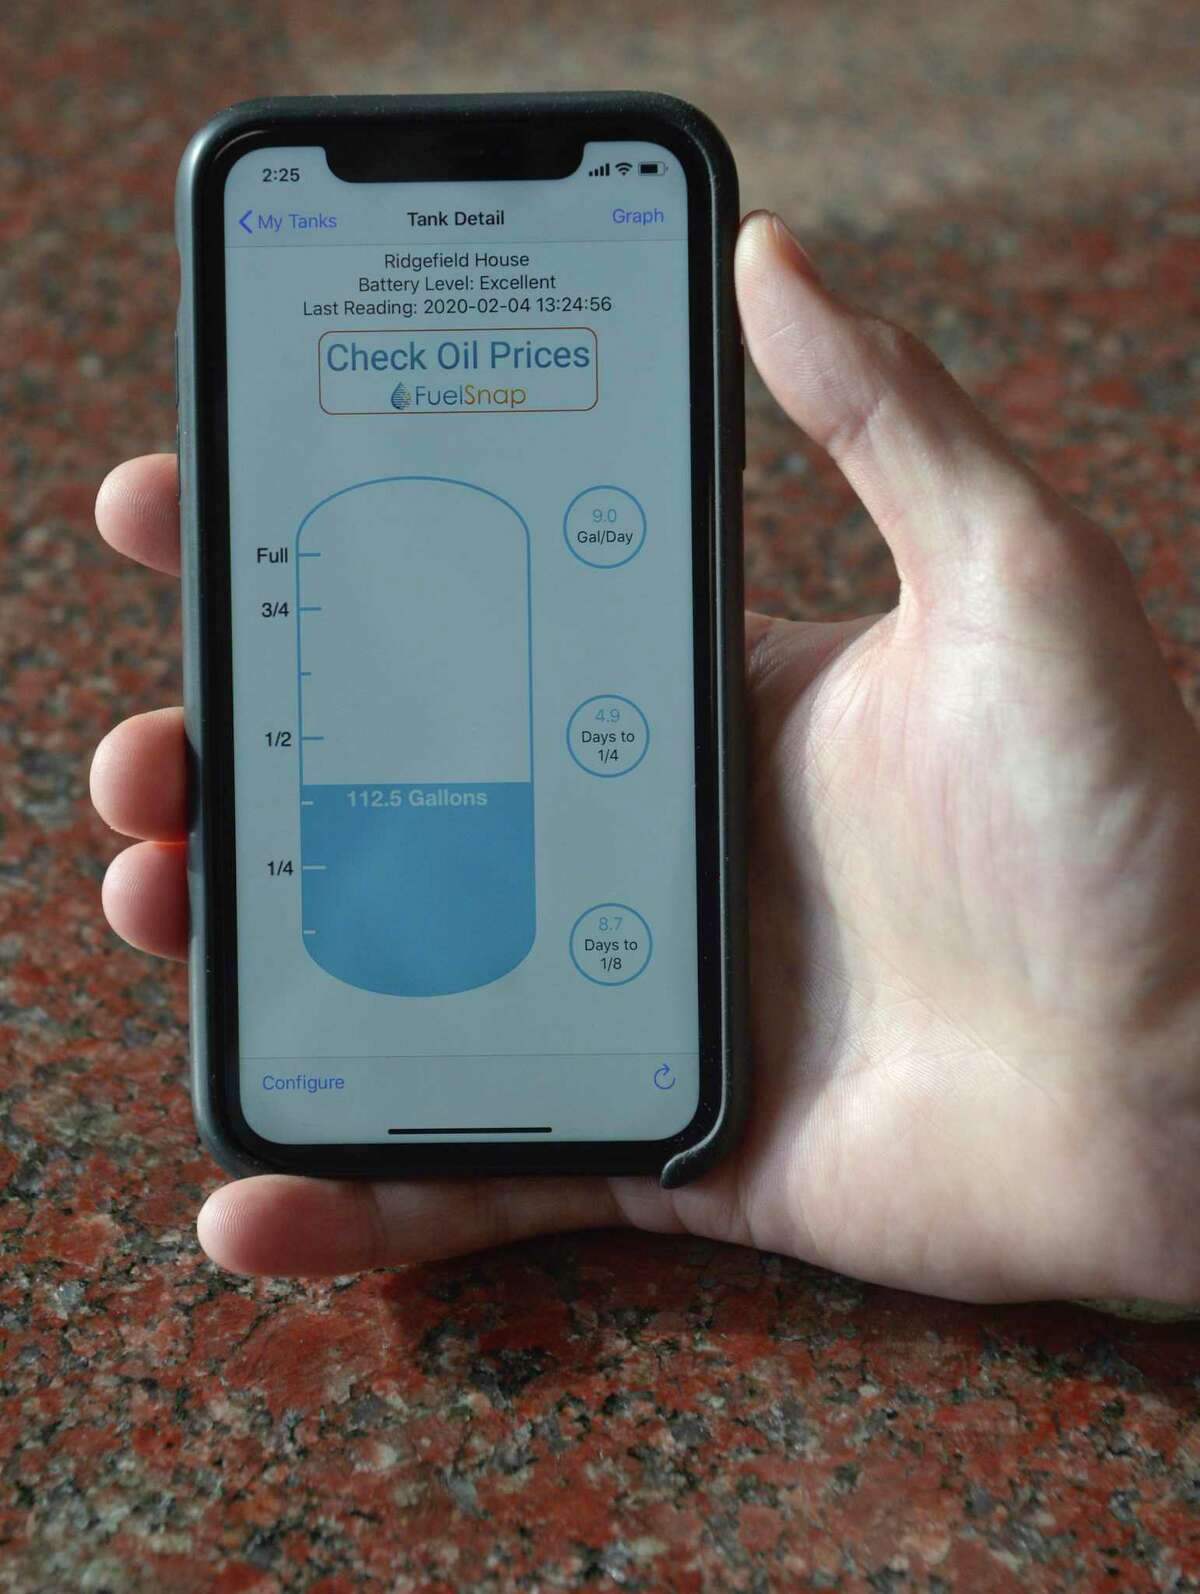 An app for Smart Oil Gauge that helps homeowners and oil companies get a better read on oil tank reserves. Tuesday, February 4, 2020, in Danbury, Conn.